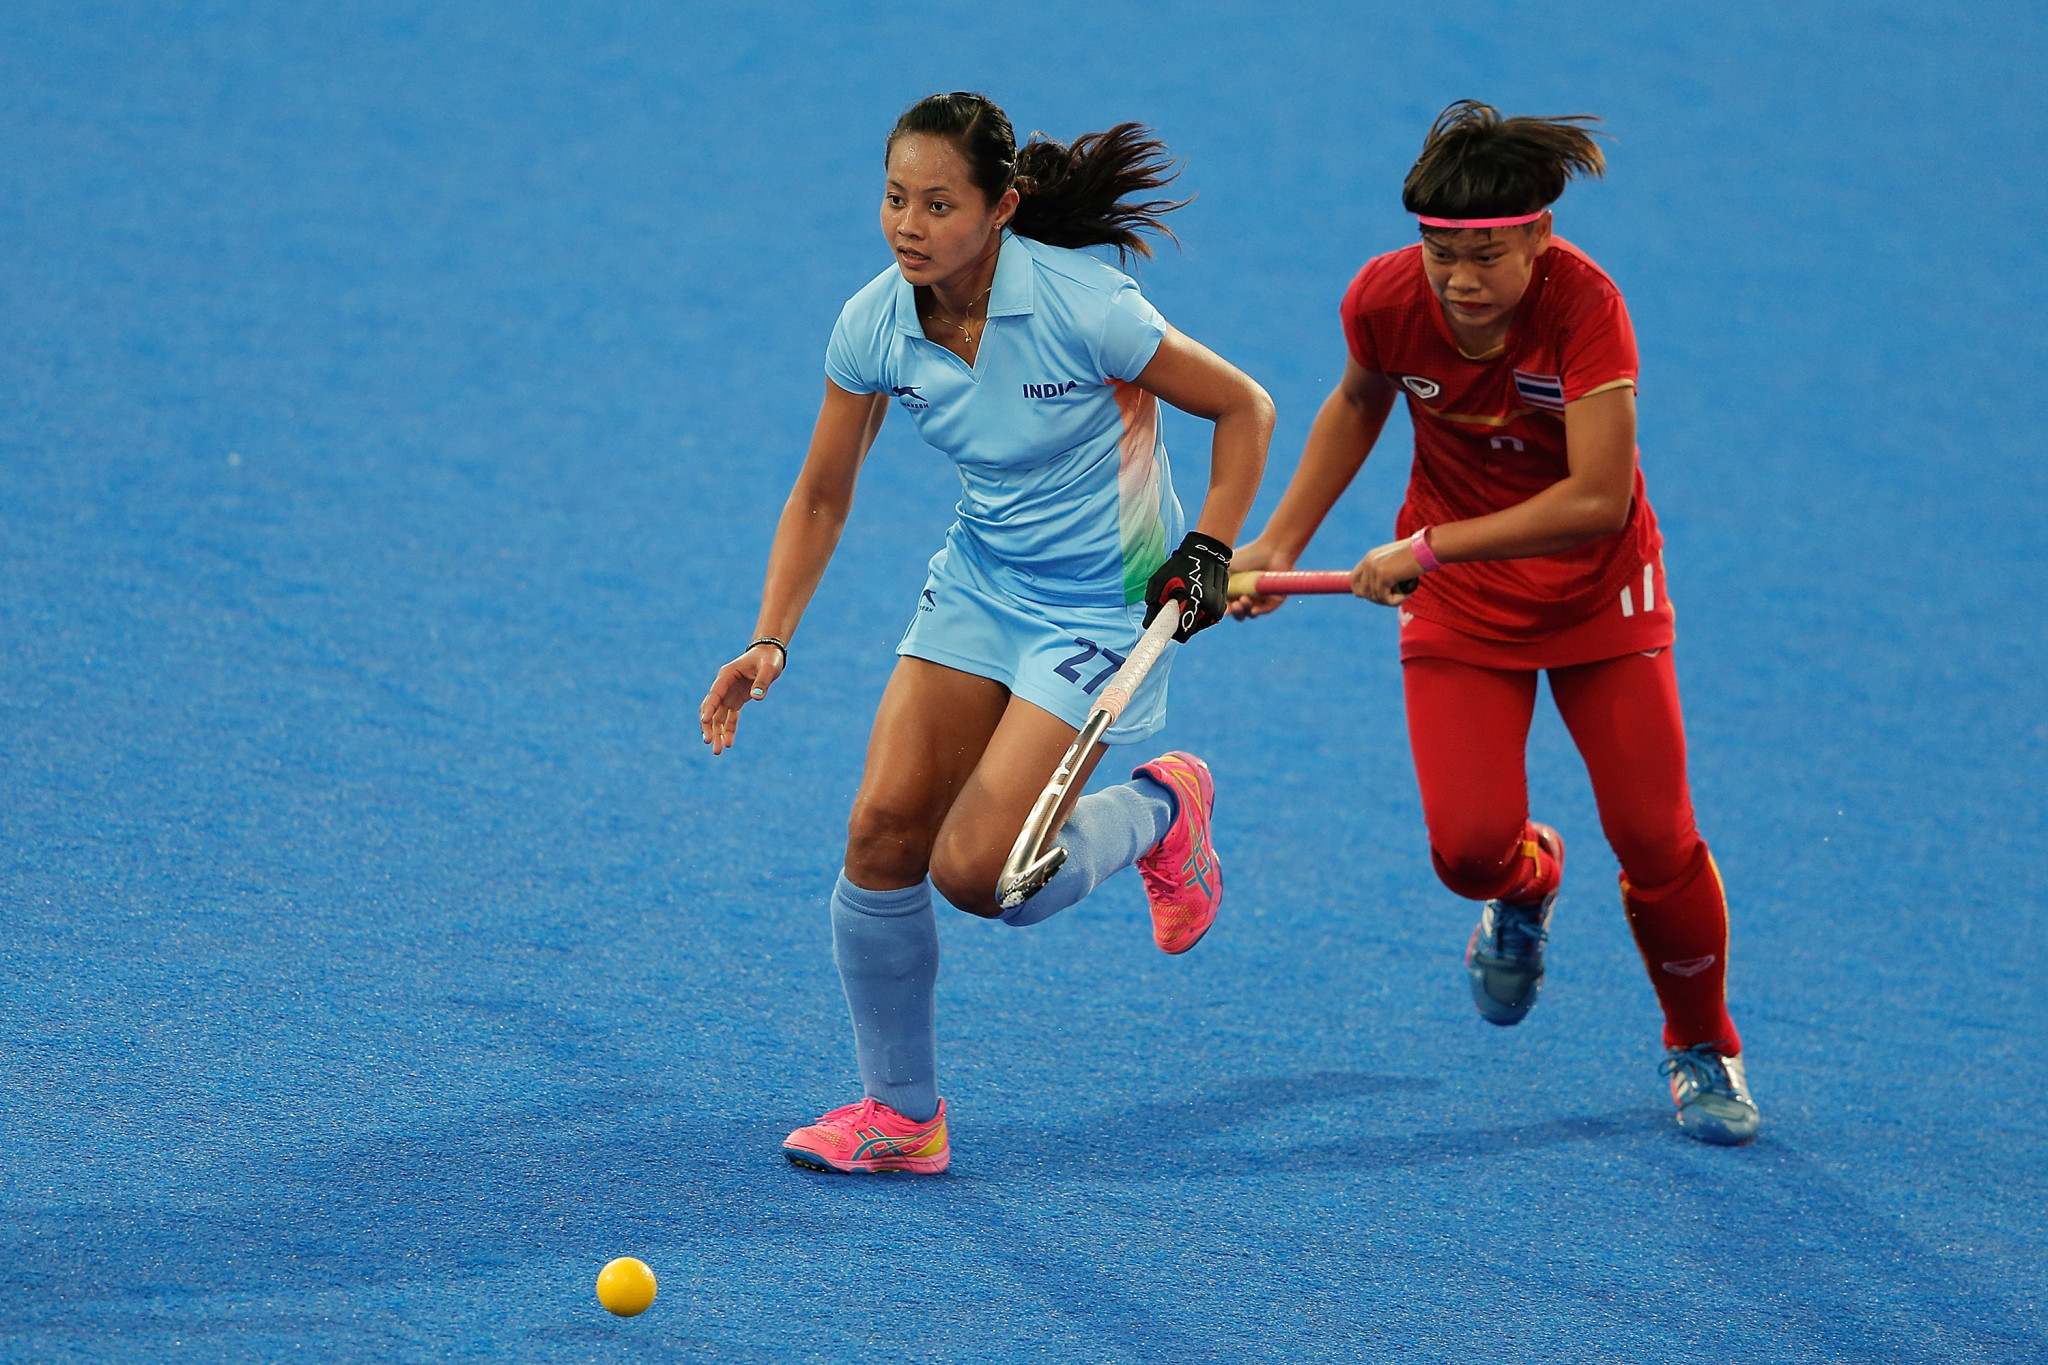 Indian women's hockey player Chanu confident of Tokyo 2020 qualification